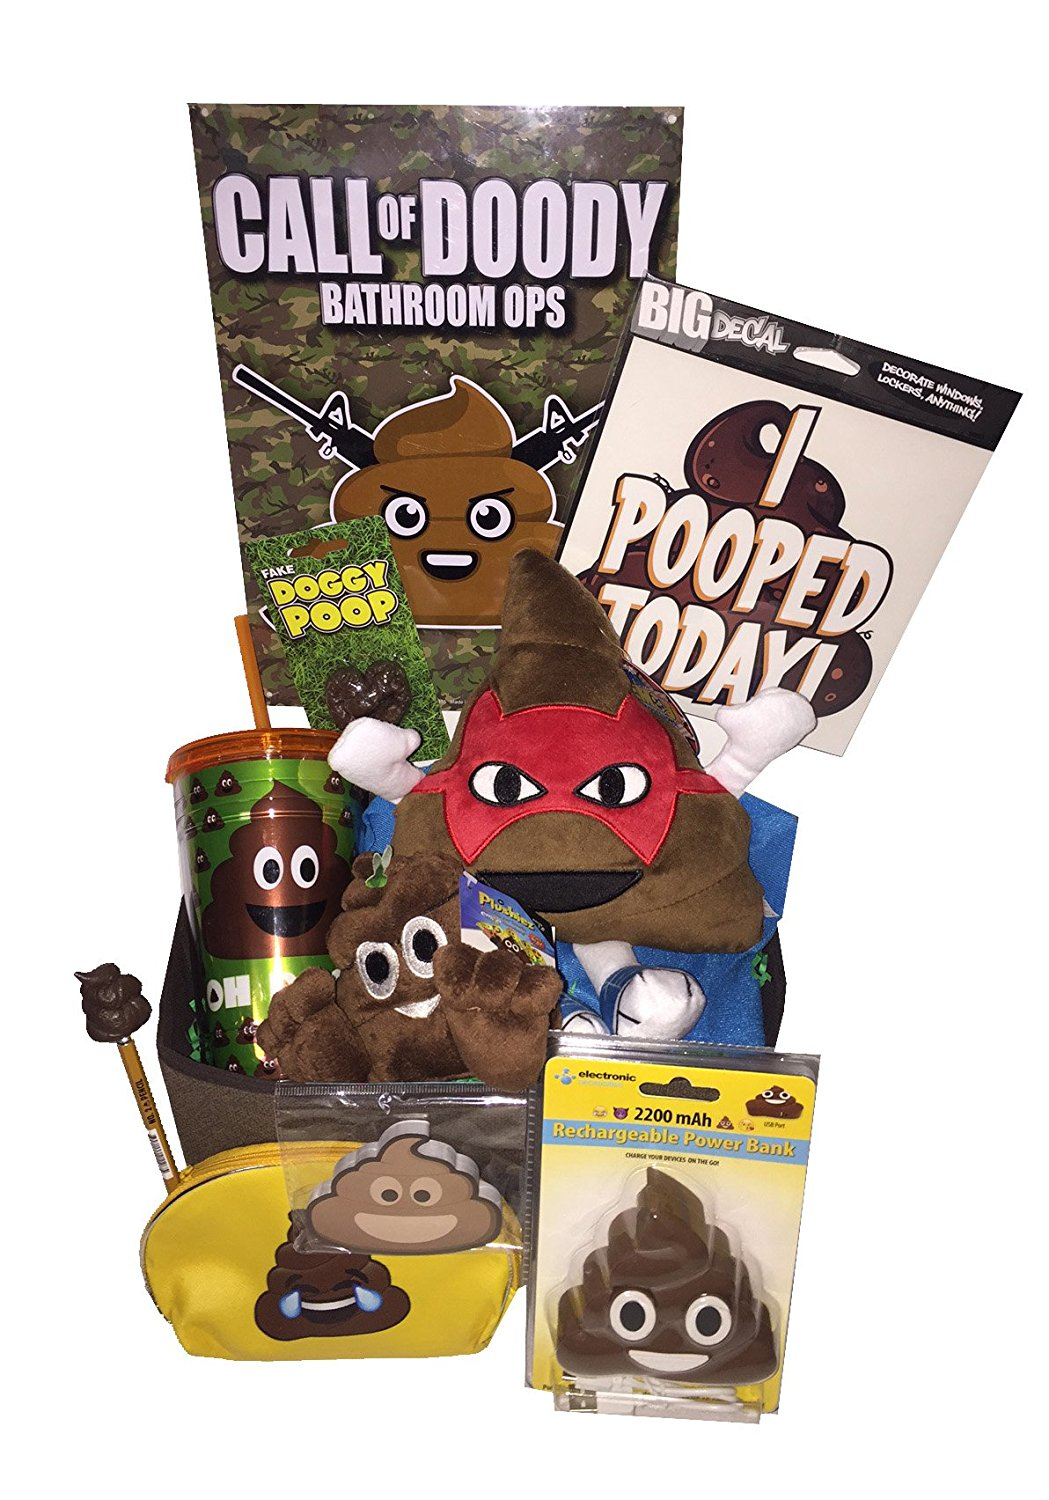 Ultimate CRAPPY EMOJI POO GIFT BASKET includes Poop Emoji Power Adapter and alot of other Crap - Ideal for Poop Obsessed, for Christmas, Constipated, Shts & Giggles, Get Well or Just Because